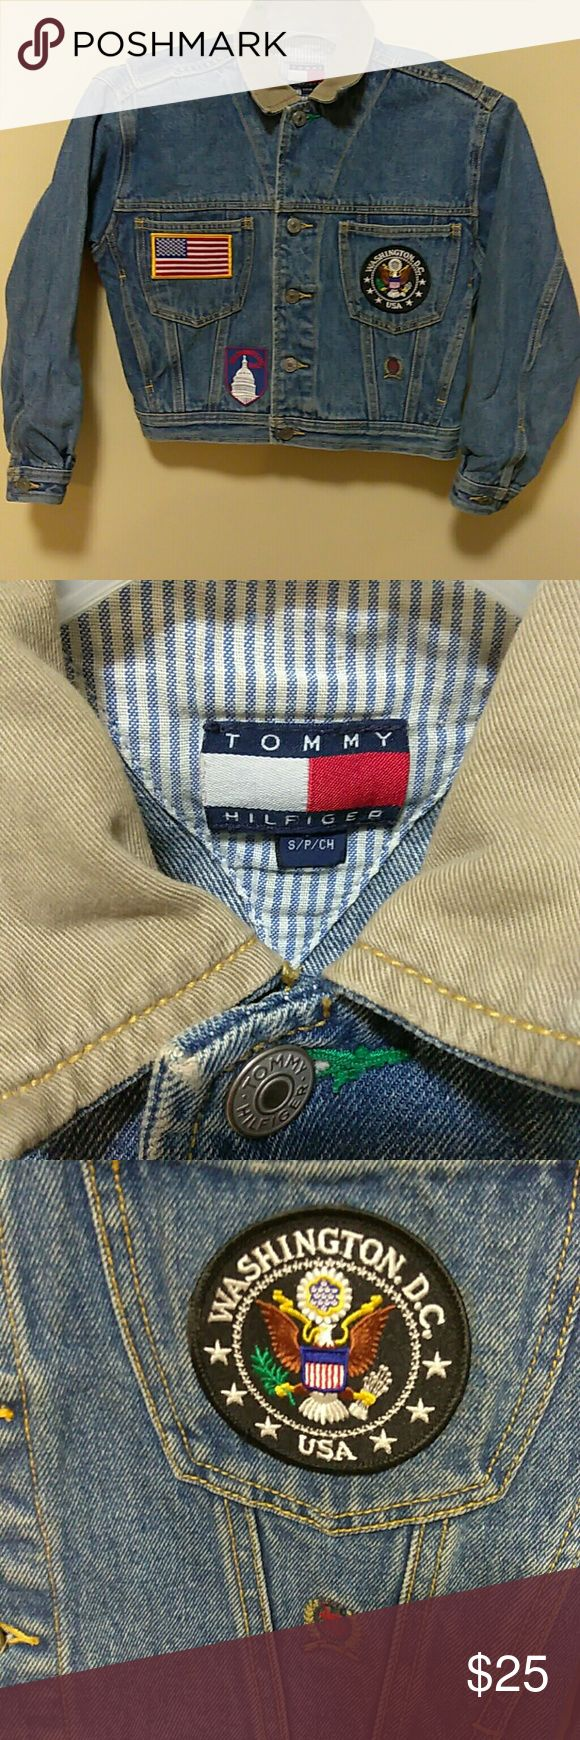 Unique vintage Tommy Hilfiger jean jacket kids This is a one of a kind, vintage, Tommy Hilfiger Jean jacket. Kids size small Washington DC edition. It is used and has a few spots that probably could be removed if dry-cleaned. Tommy Hilfiger Jackets & Coats Jean Jackets